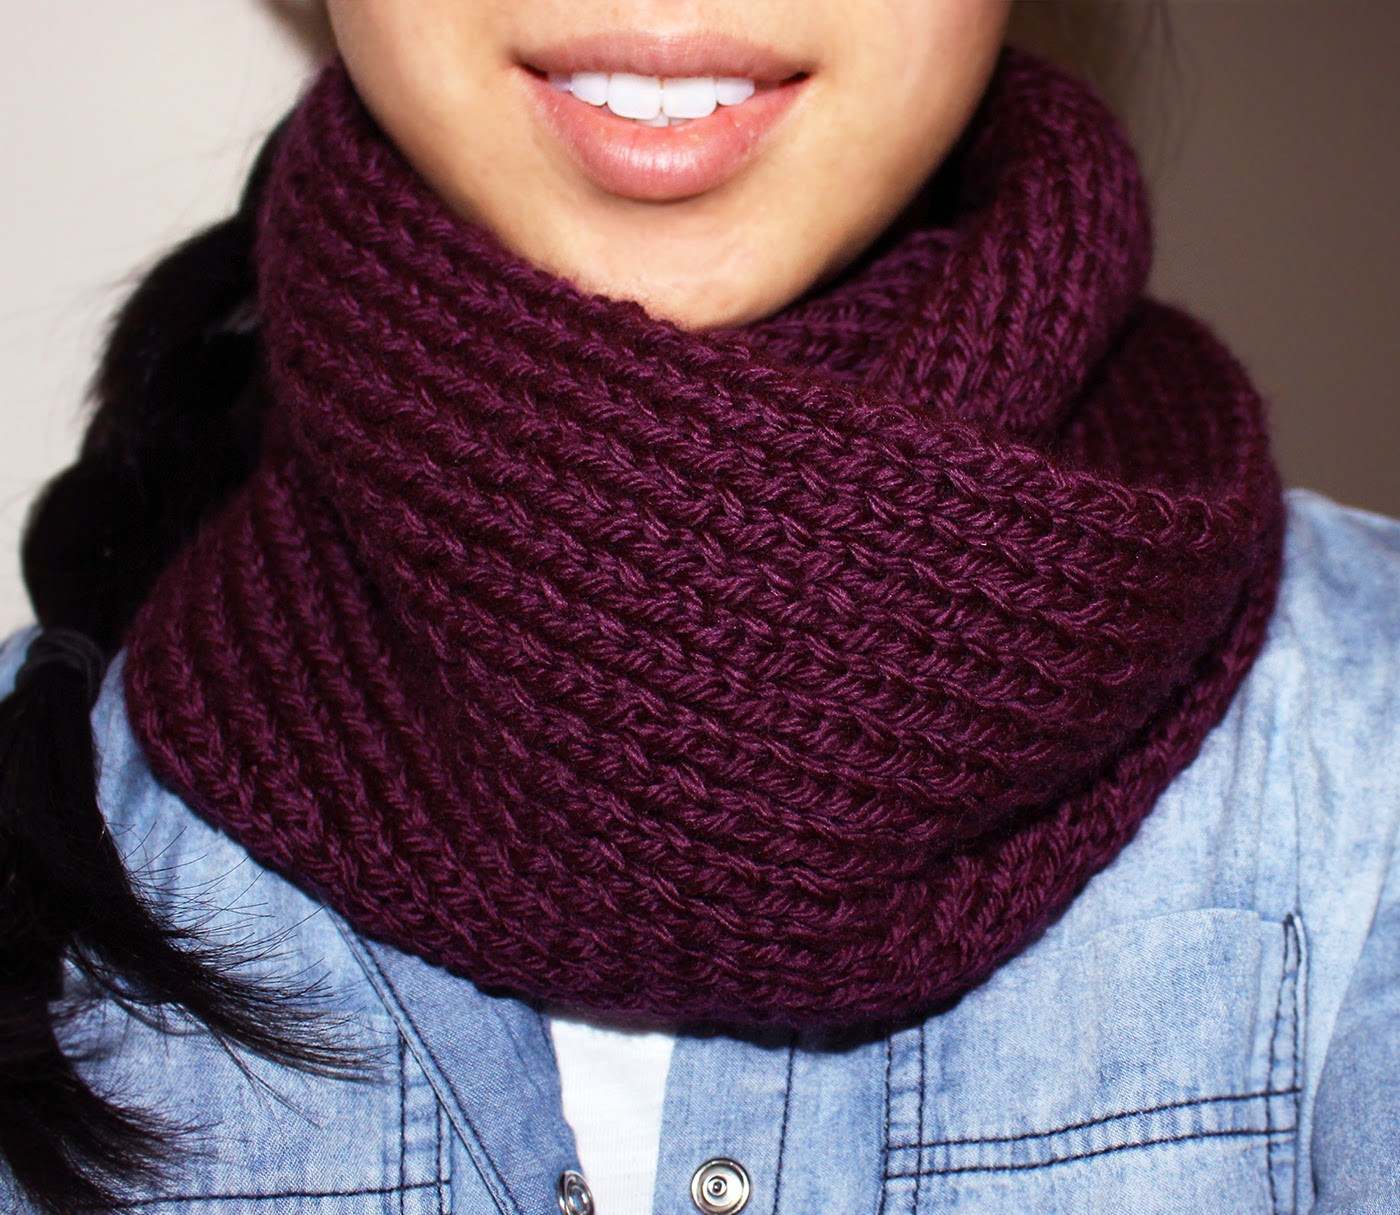 Best Of Purllin Acai Infinity Circle Scarf [free Knitting Pattern] Knit Circle Scarf Of Brilliant 47 Photos Knit Circle Scarf